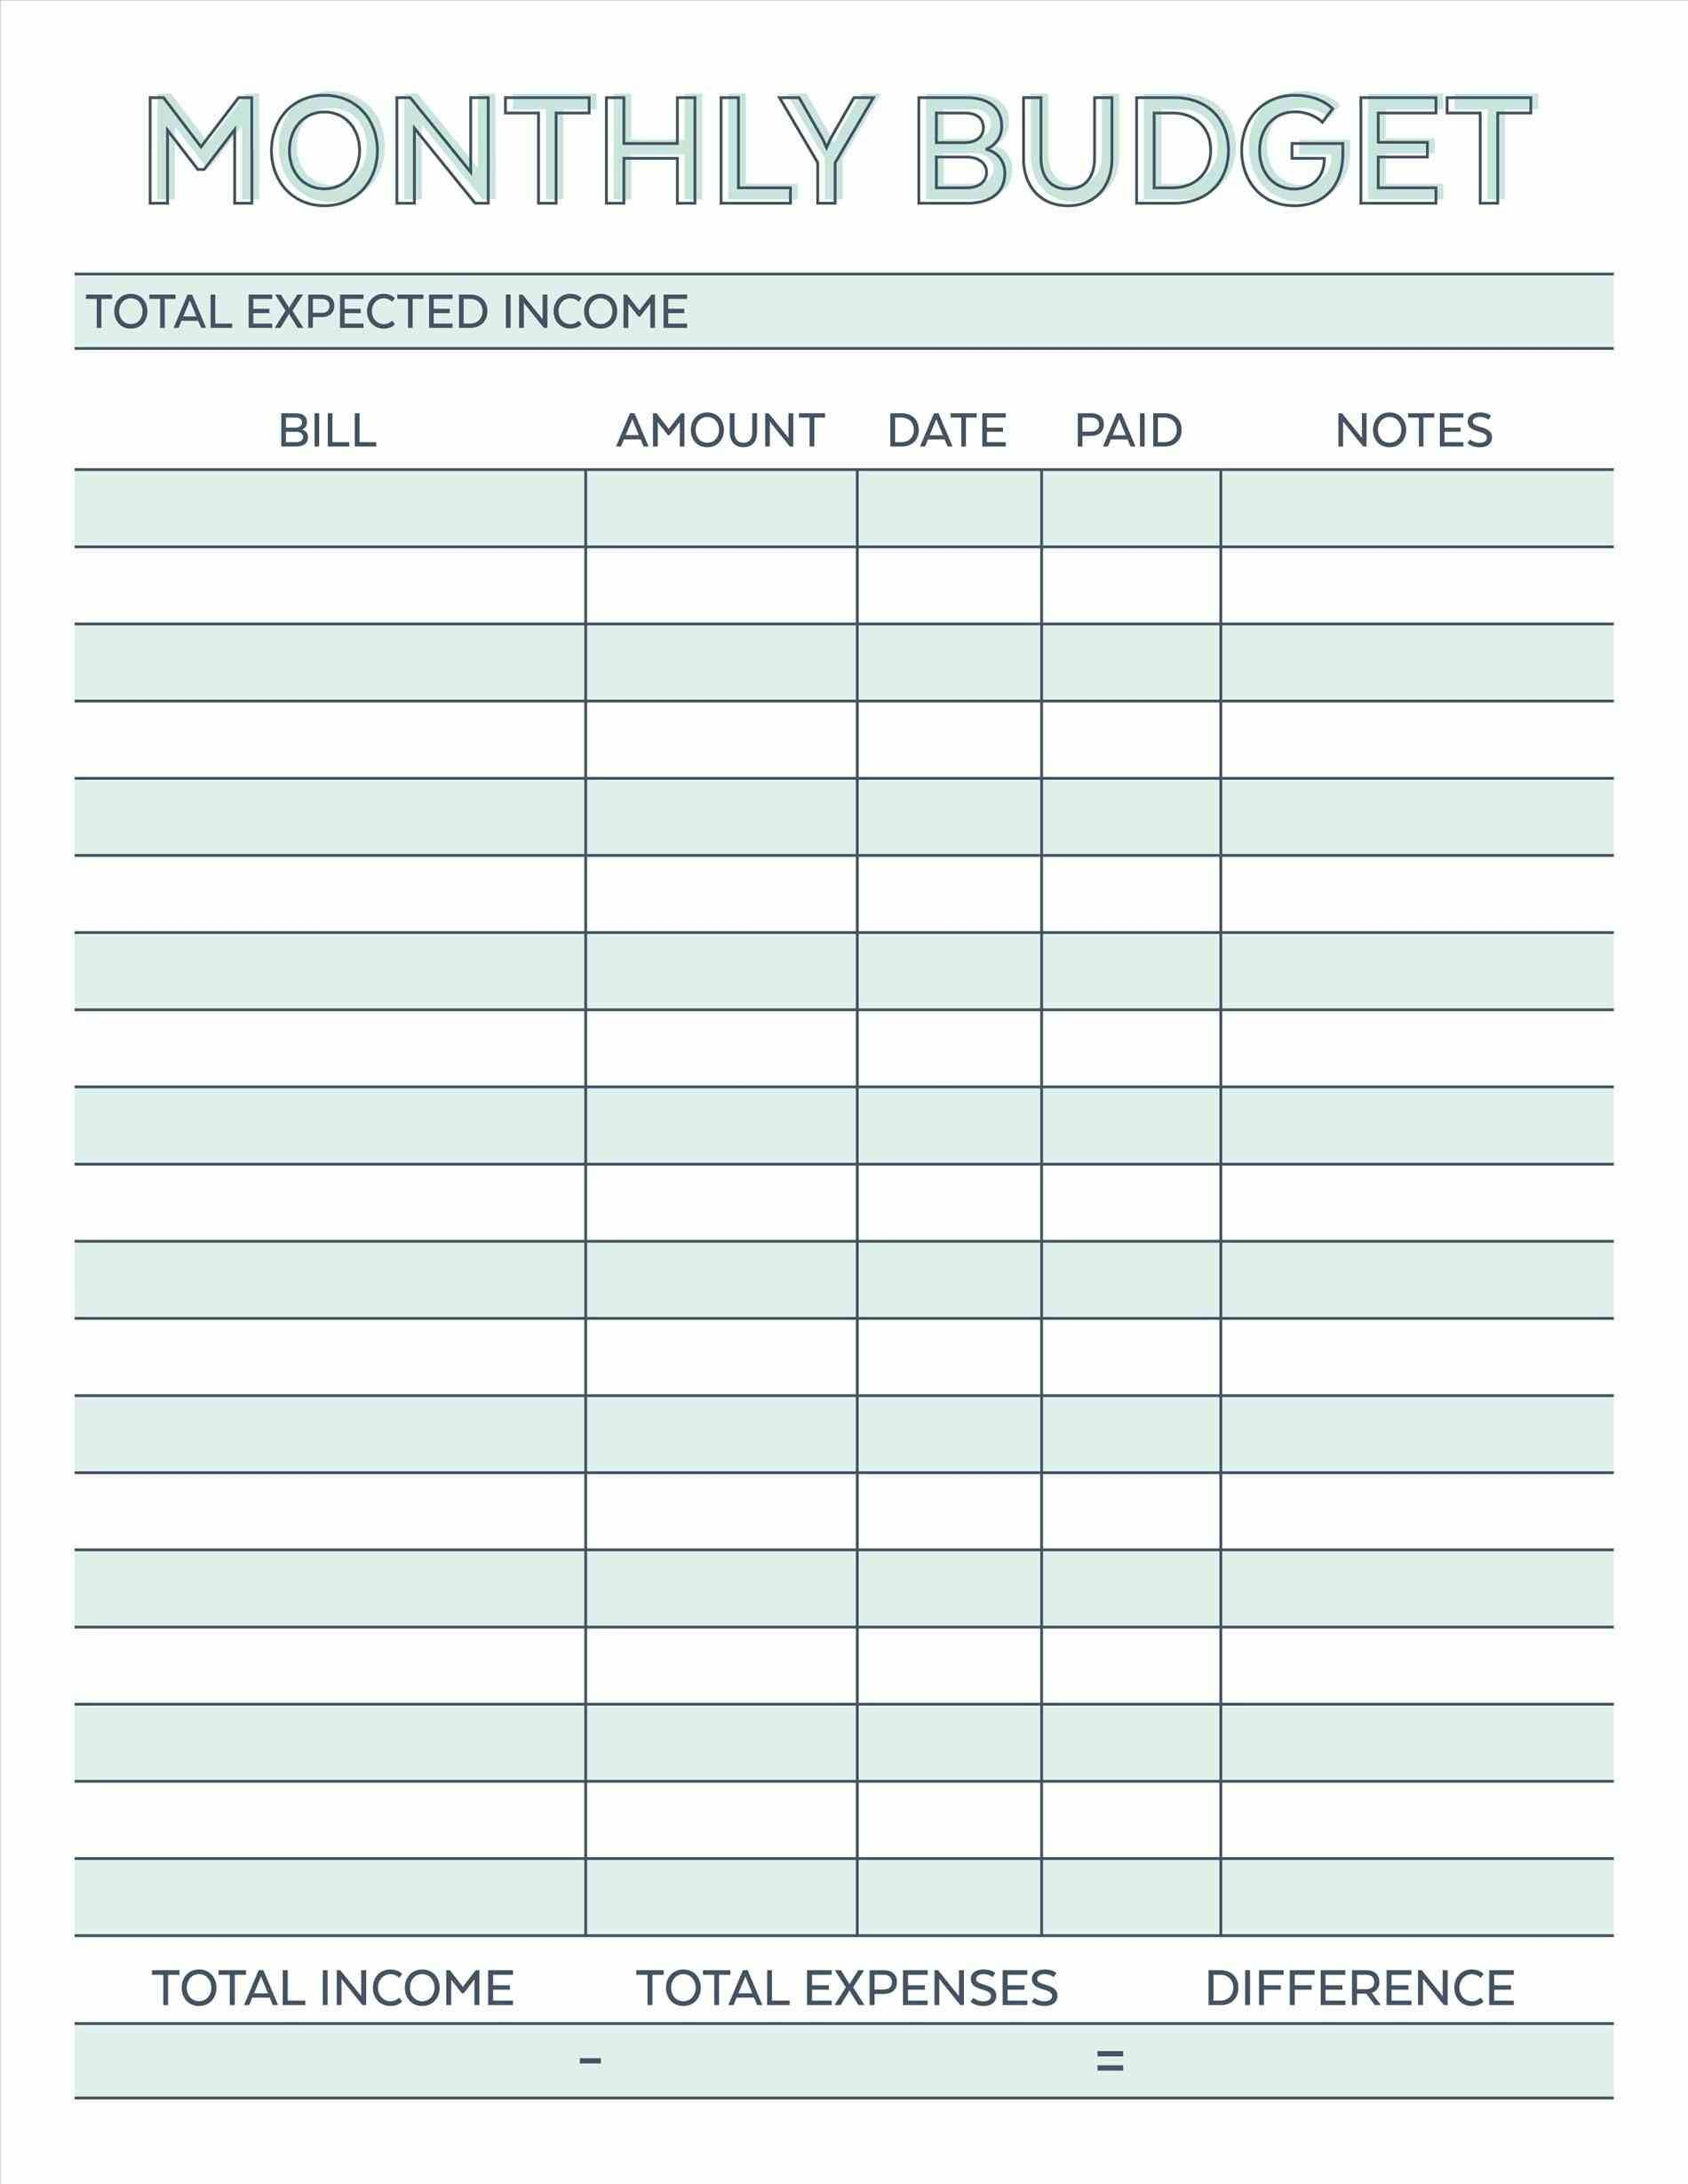 Image Result For Free Monthly Budget Template | Budget